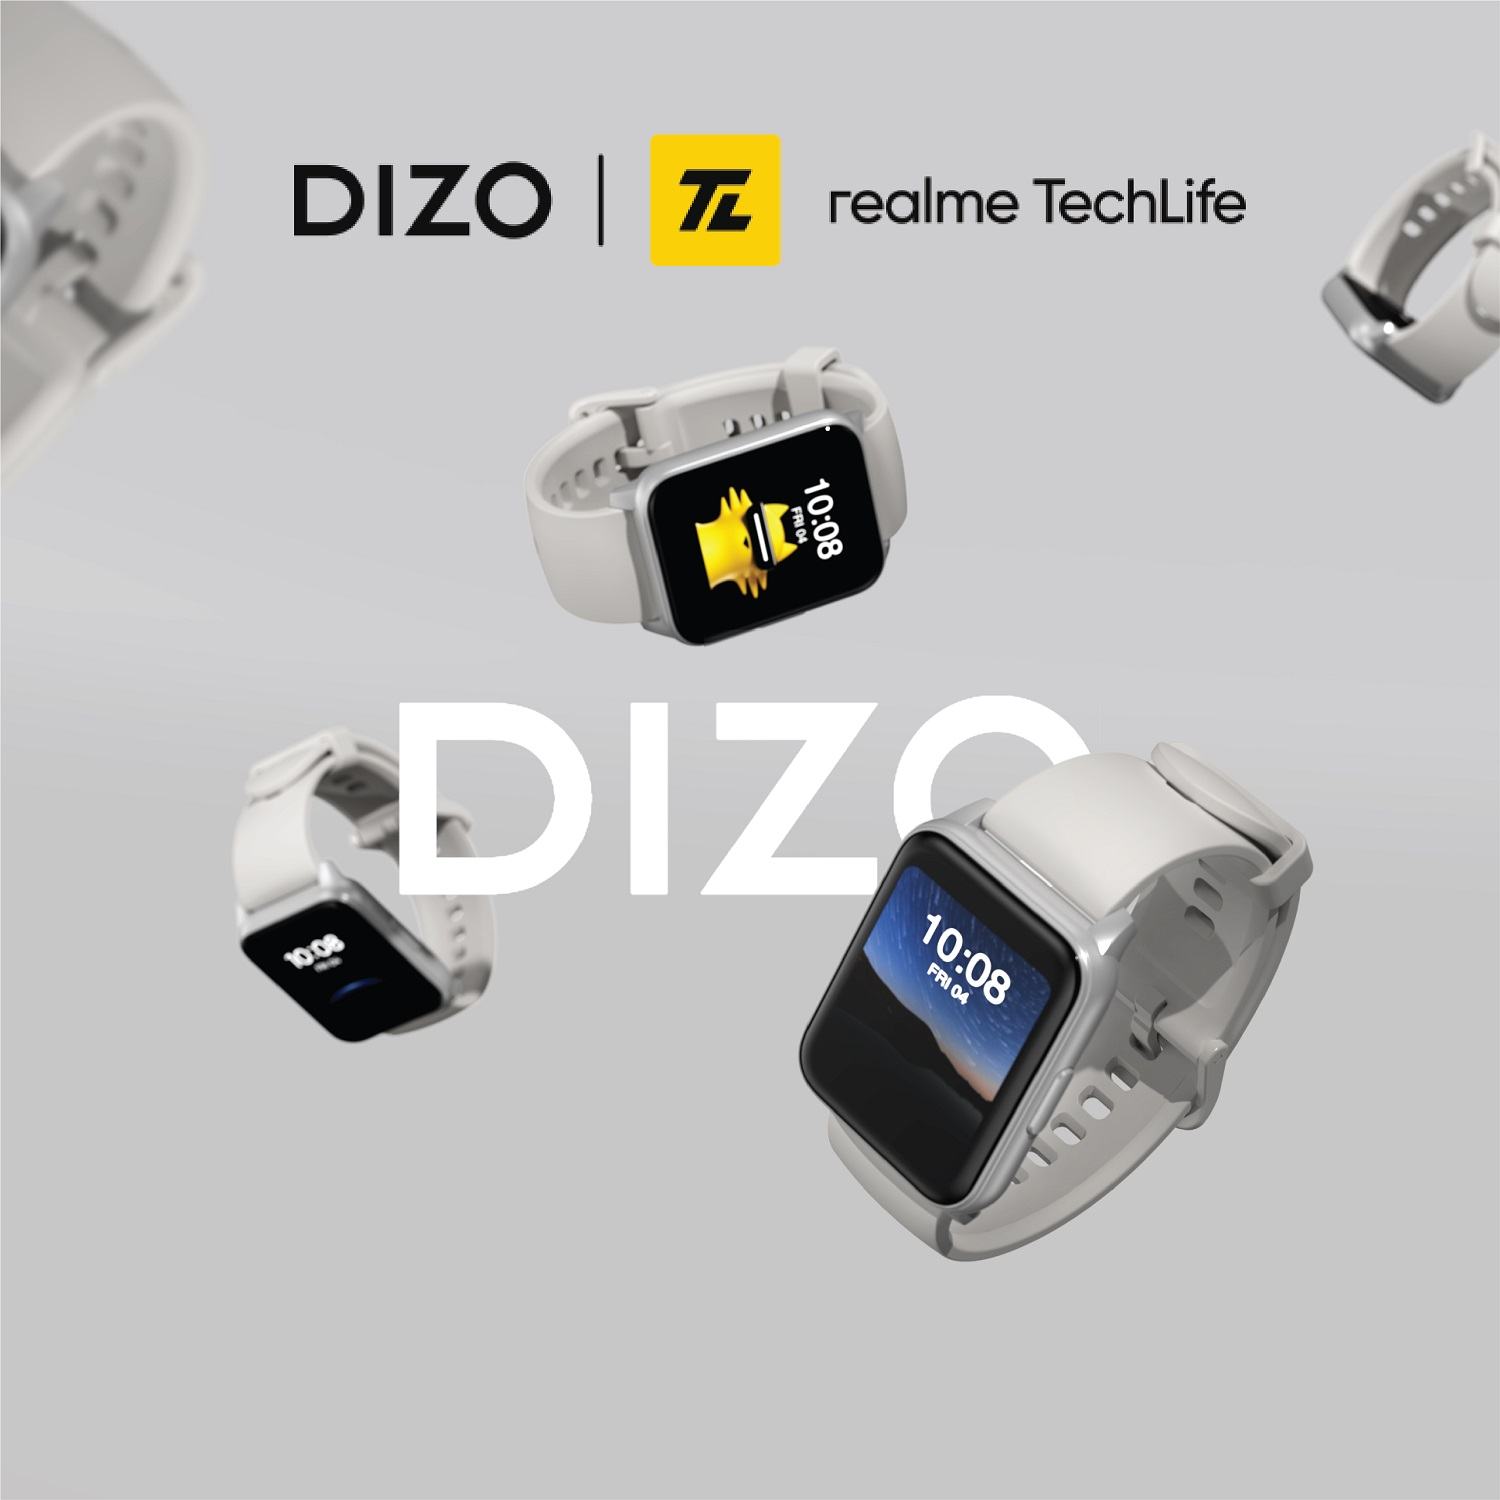 realme TechLife Ecosystem's DIZO Watch and DIZO GoPods D launched in Malaysia